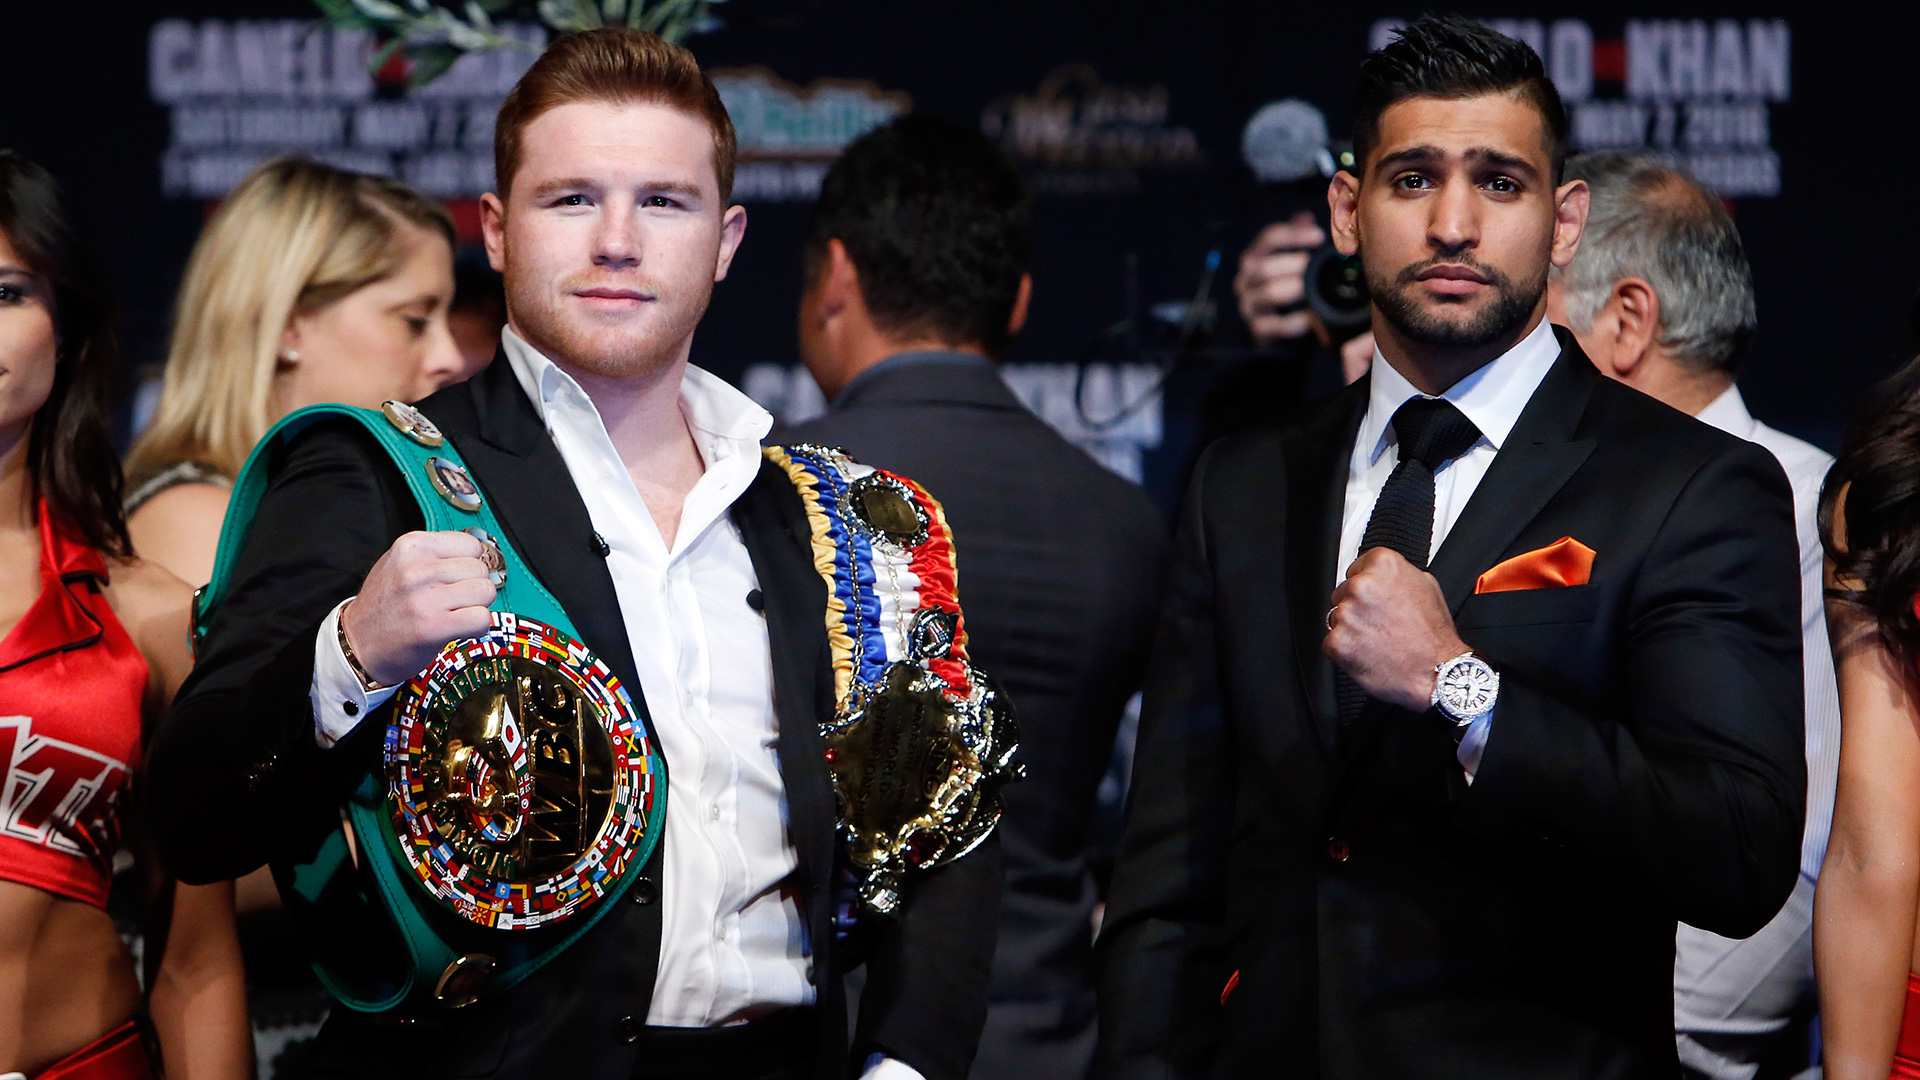 Canelo will need a big name if he wants to keep avoiding GGG